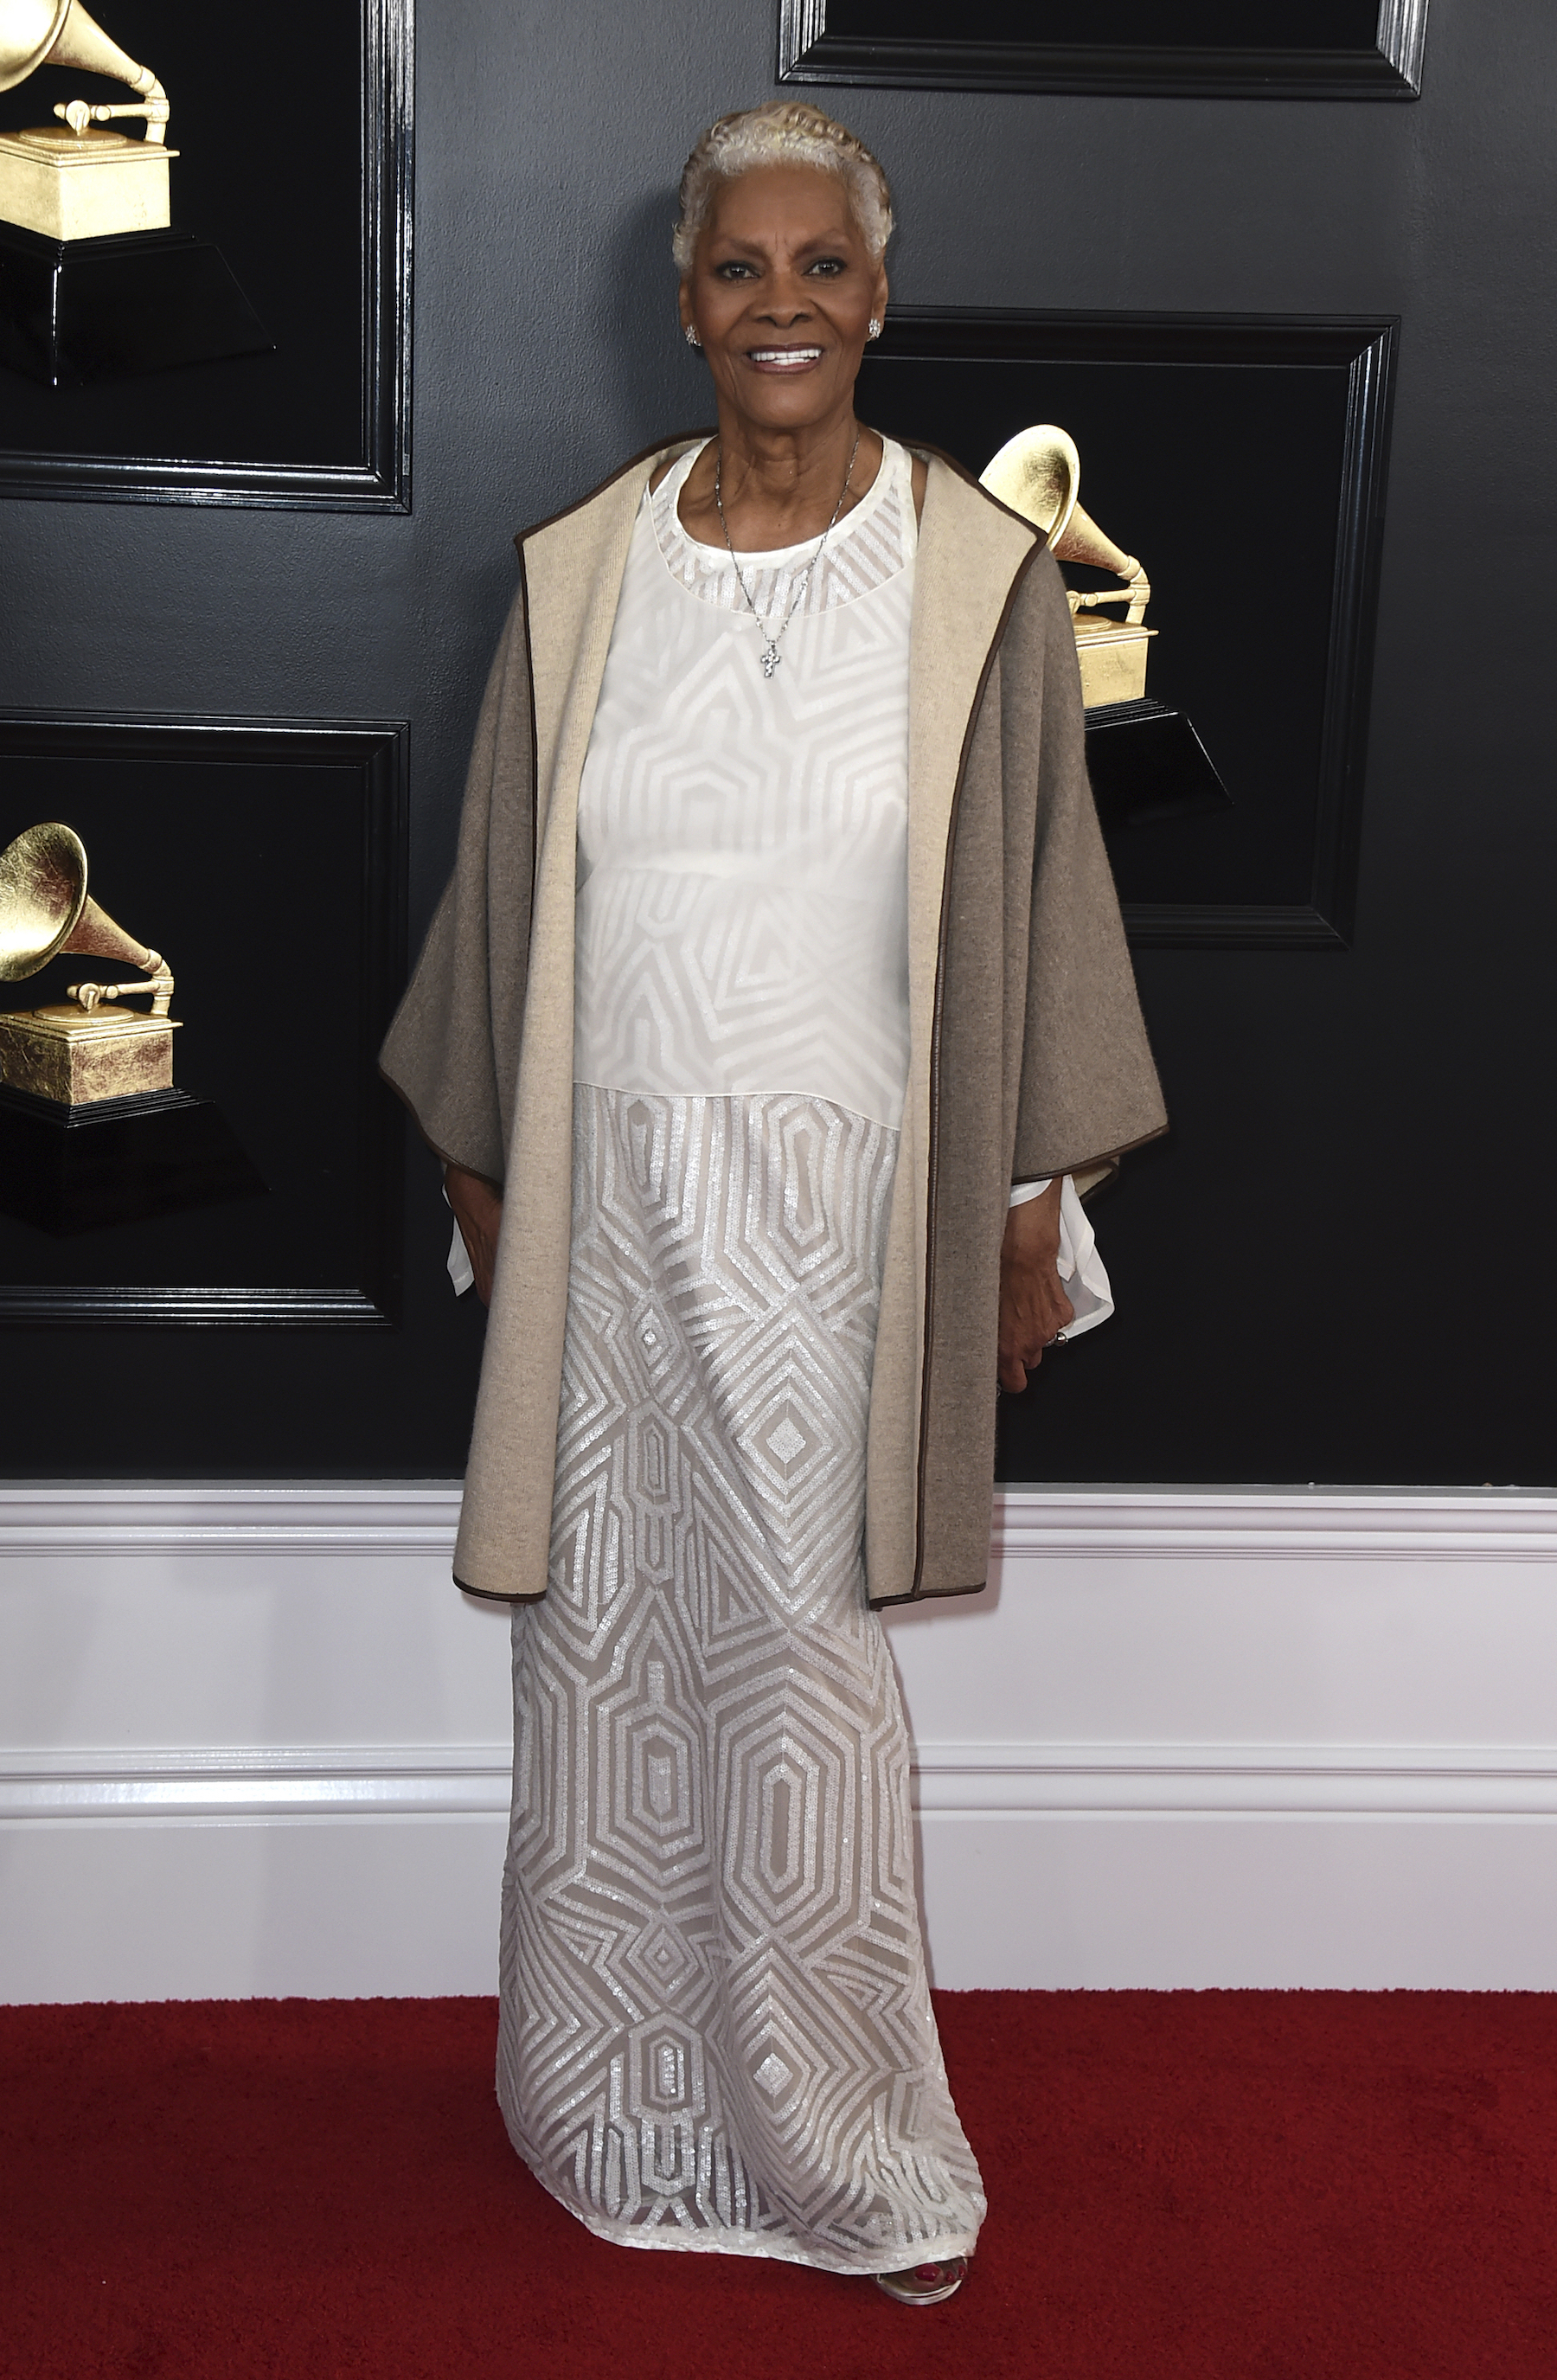 <div class='meta'><div class='origin-logo' data-origin='AP'></div><span class='caption-text' data-credit='Jordan Strauss/Invision/AP'>Dionne Warwick arrives at the 61st annual Grammy Awards at the Staples Center on Sunday, Feb. 10, 2019, in Los Angeles.</span></div>